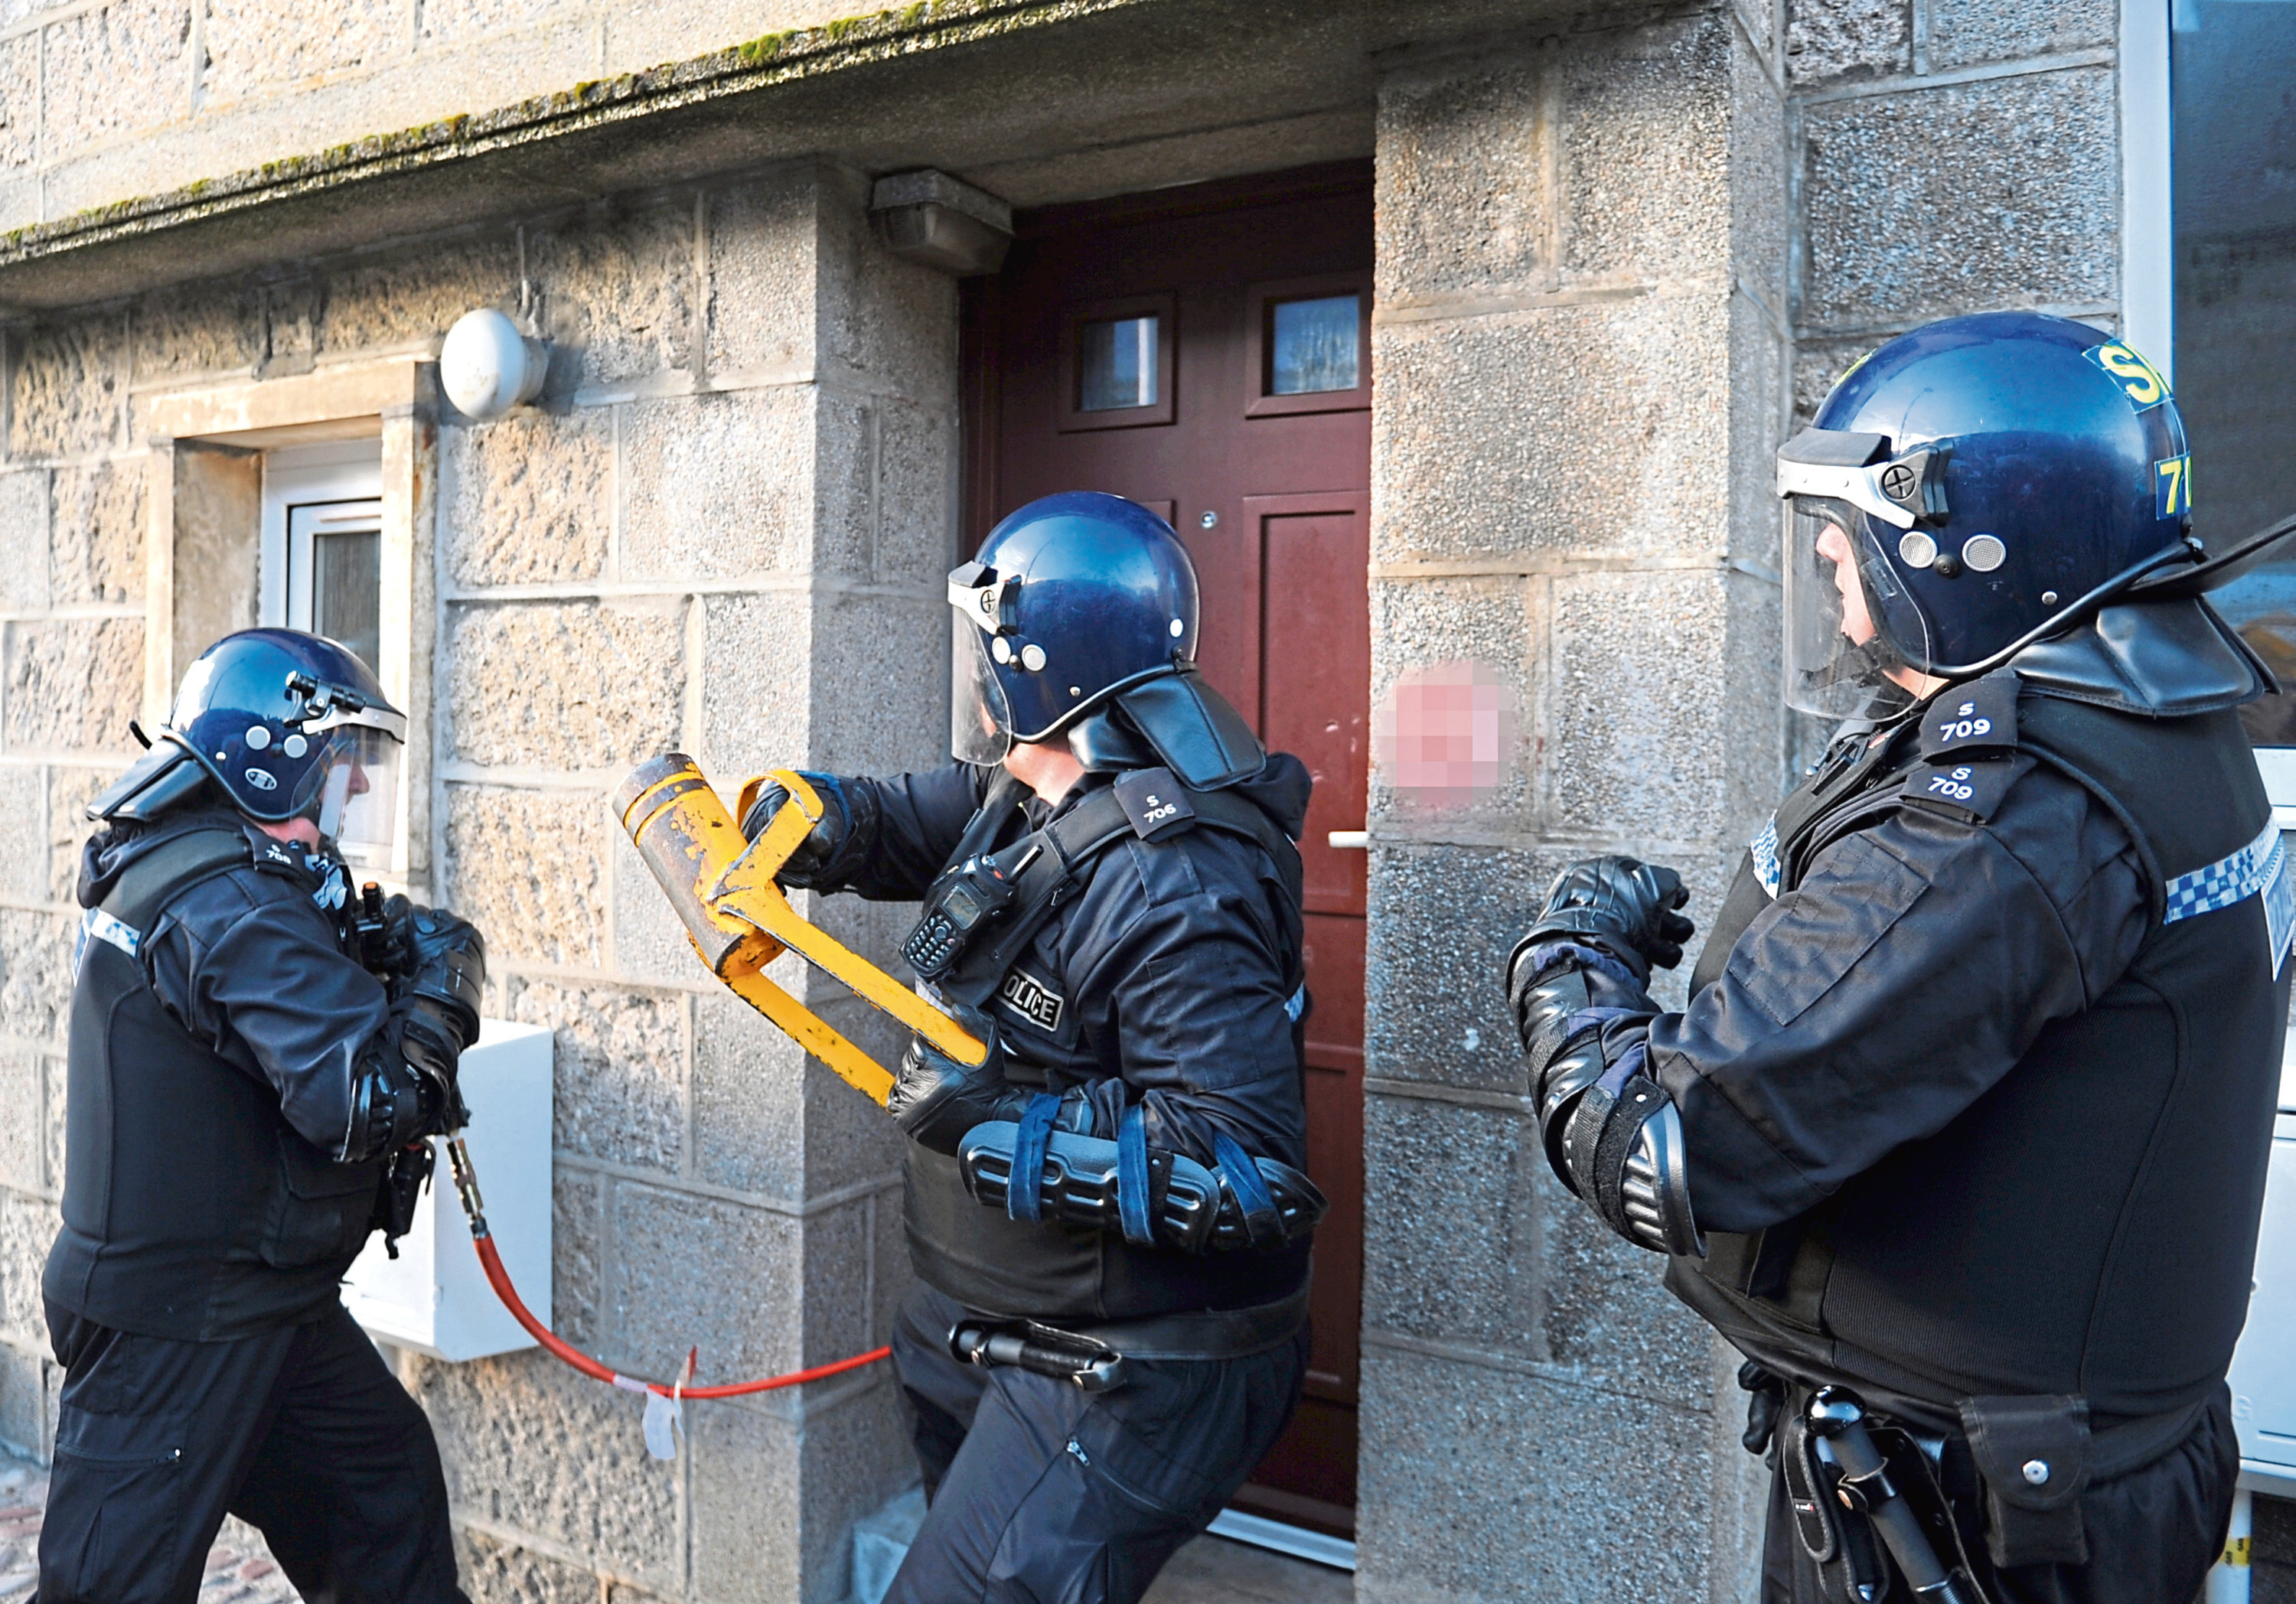 A series of police raids took place